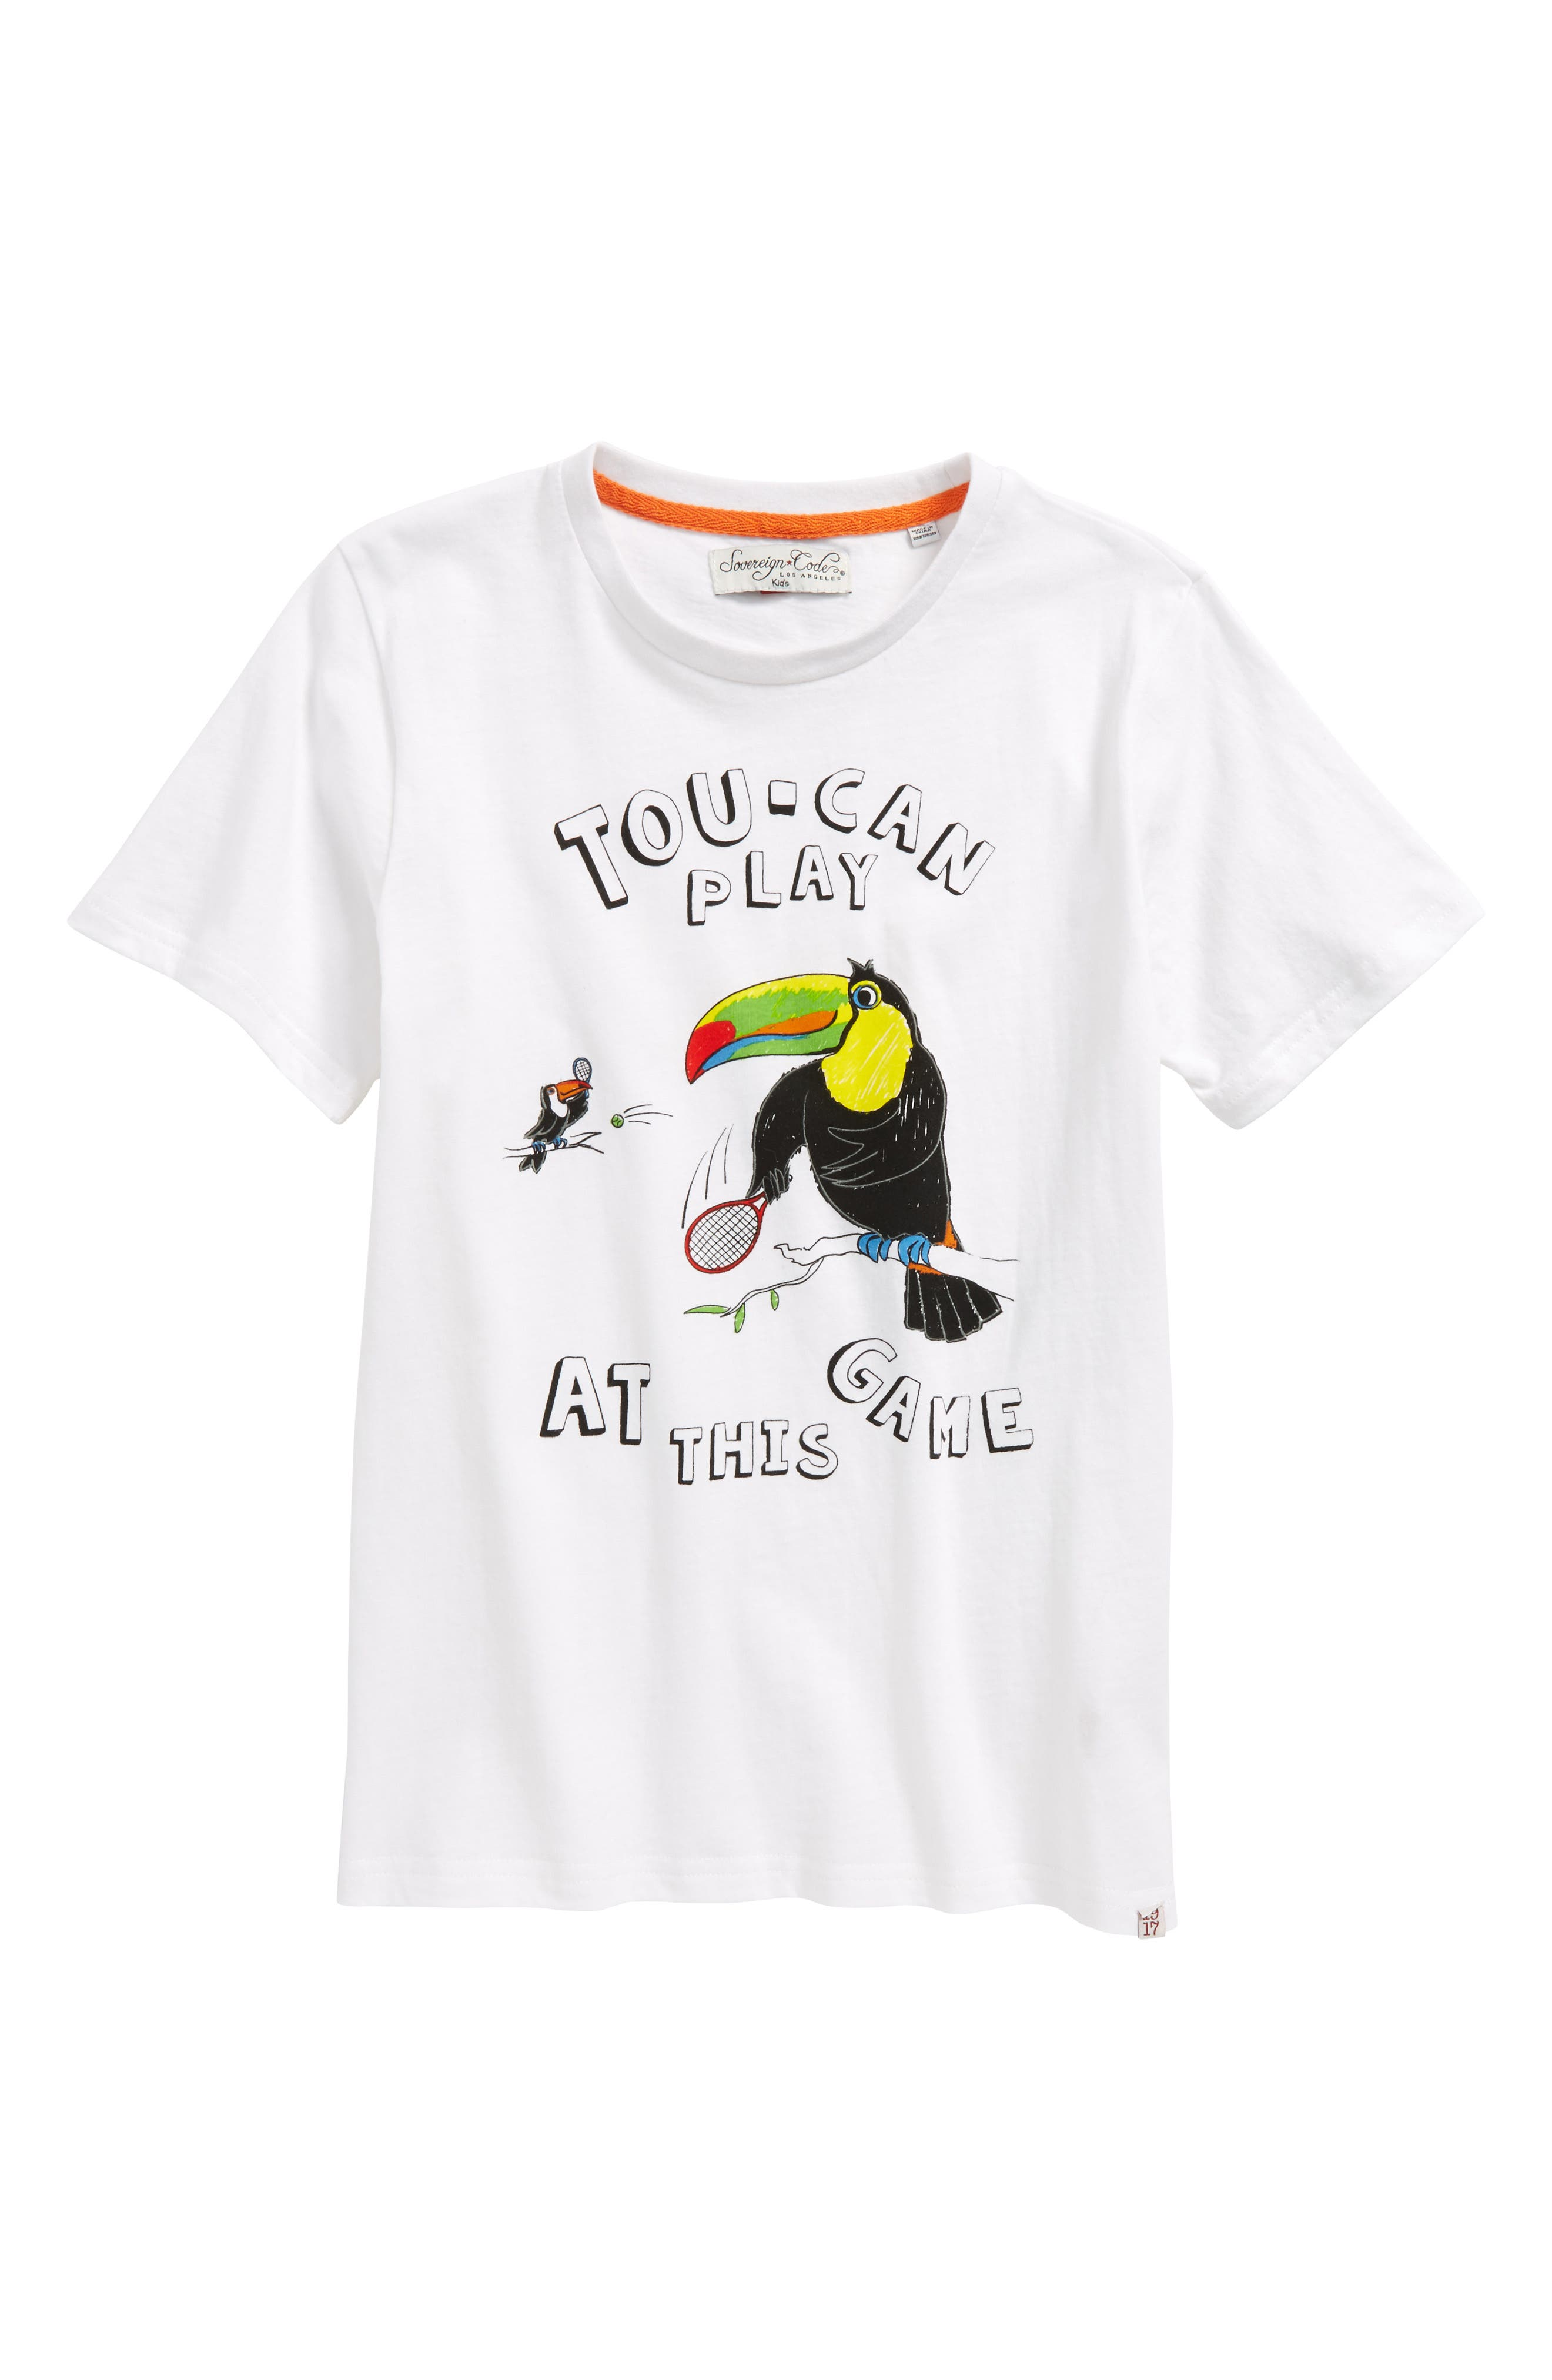 Sovereign Code Toucan Play Graphic T-Shirt (Toddler Boys & Little Boys)